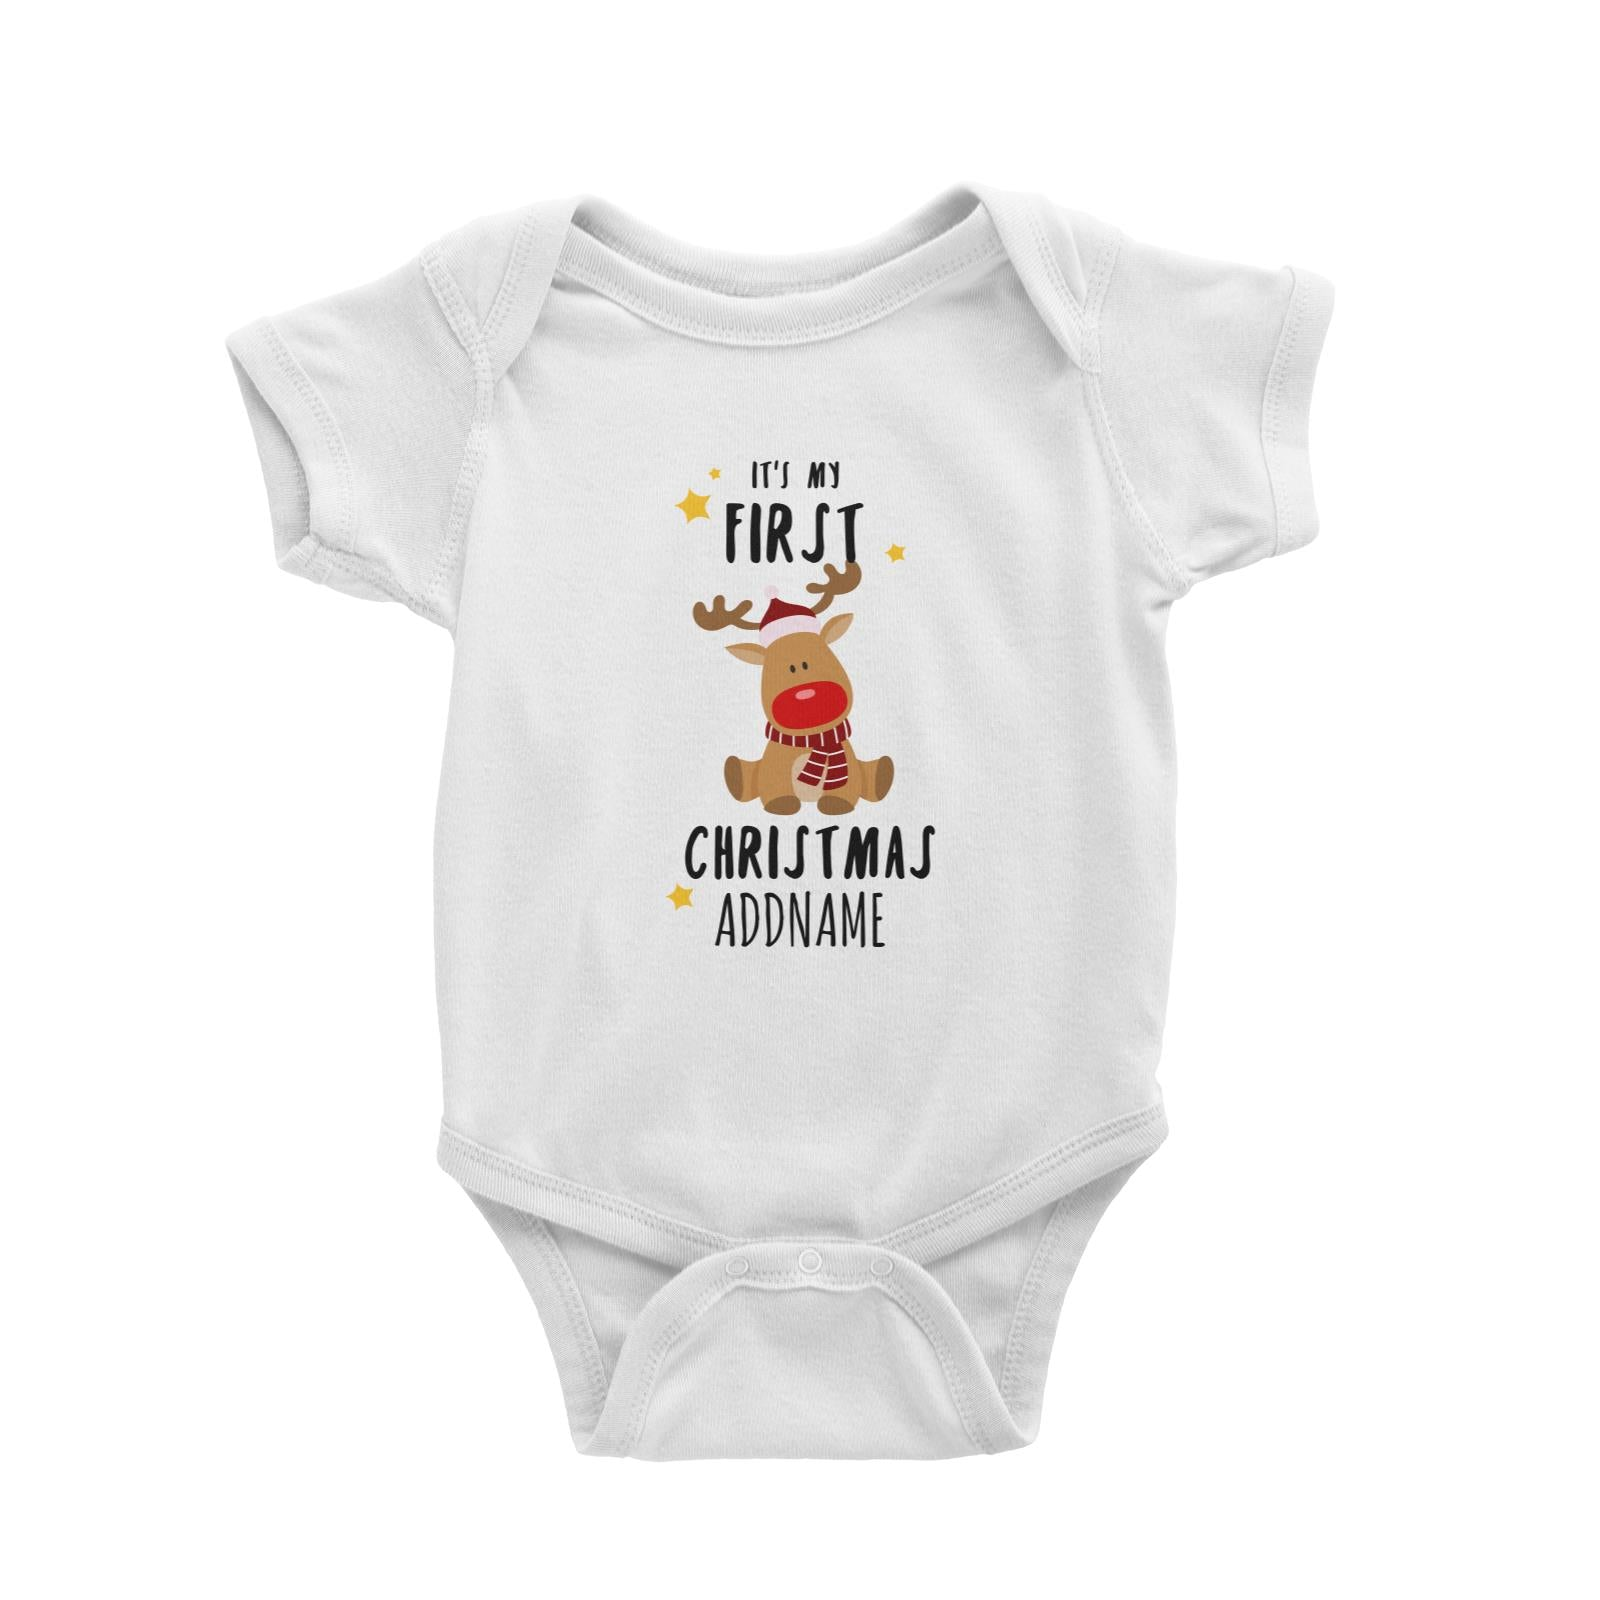 Cute Rudolph First Christmas Addname Baby Romper  Personalizable Designs Animal